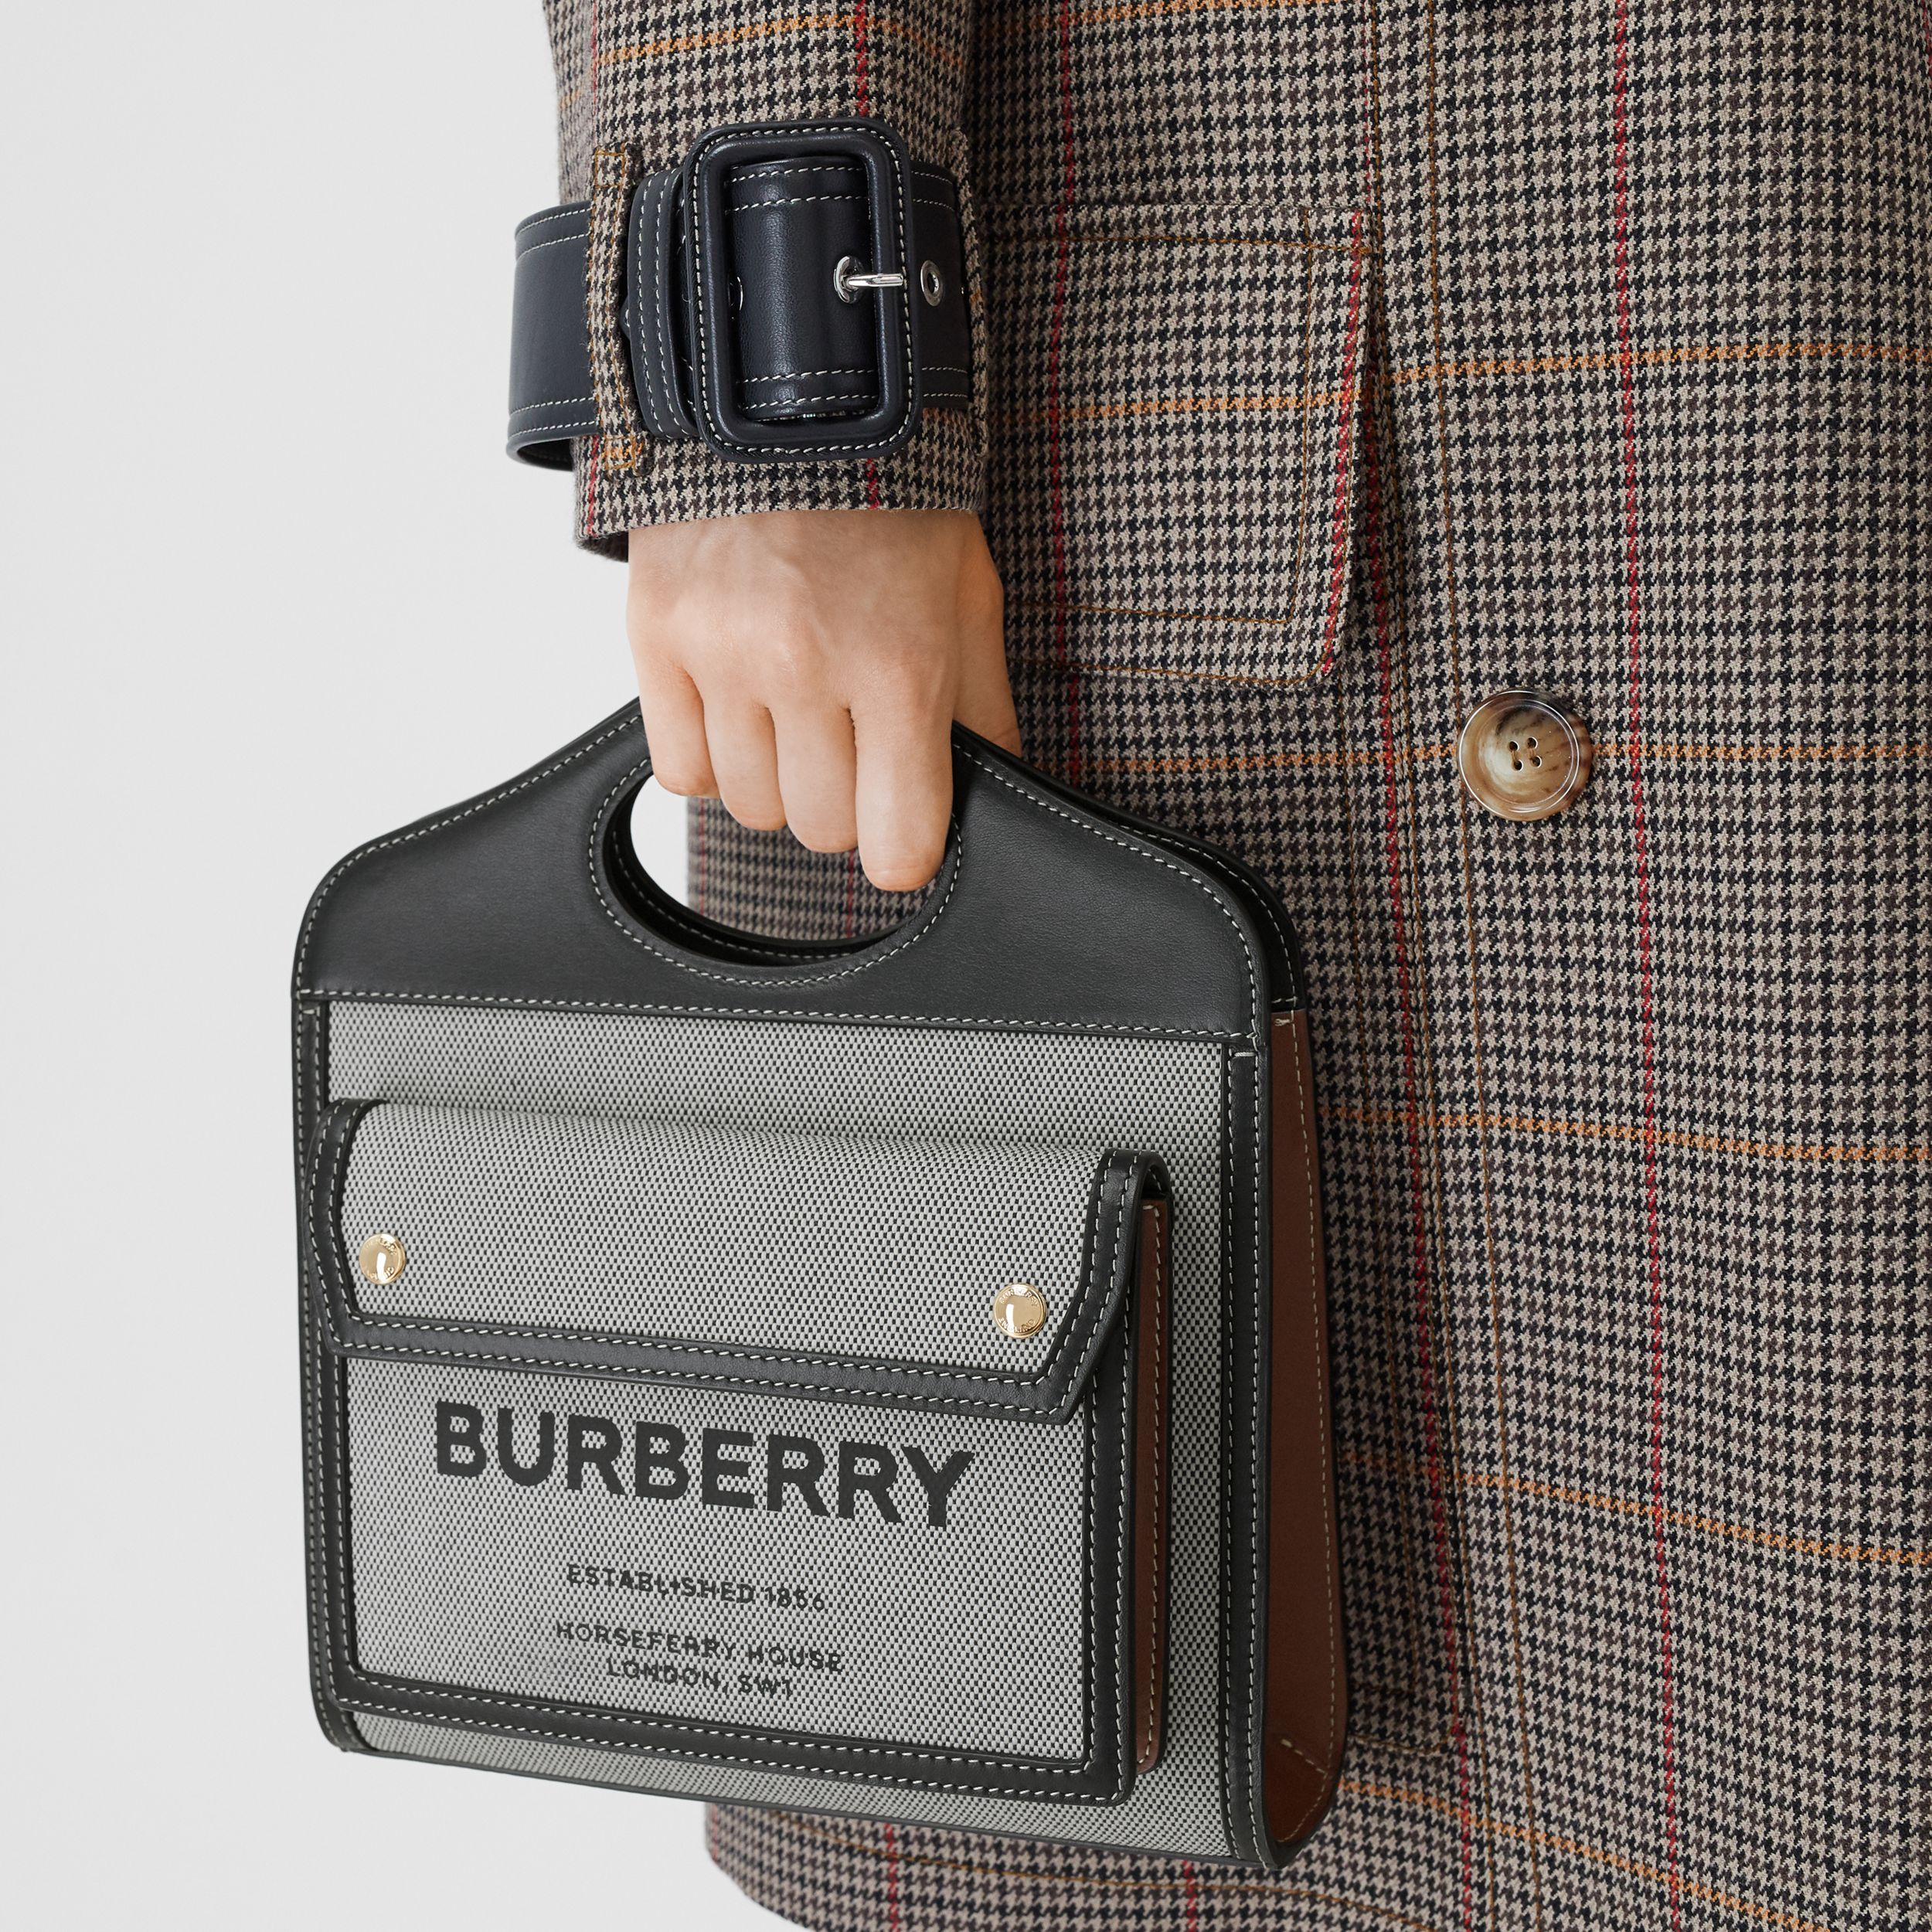 Mini Tri-tone Canvas and Leather Pocket Bag in Black/tan - Women | Burberry United Kingdom - 3